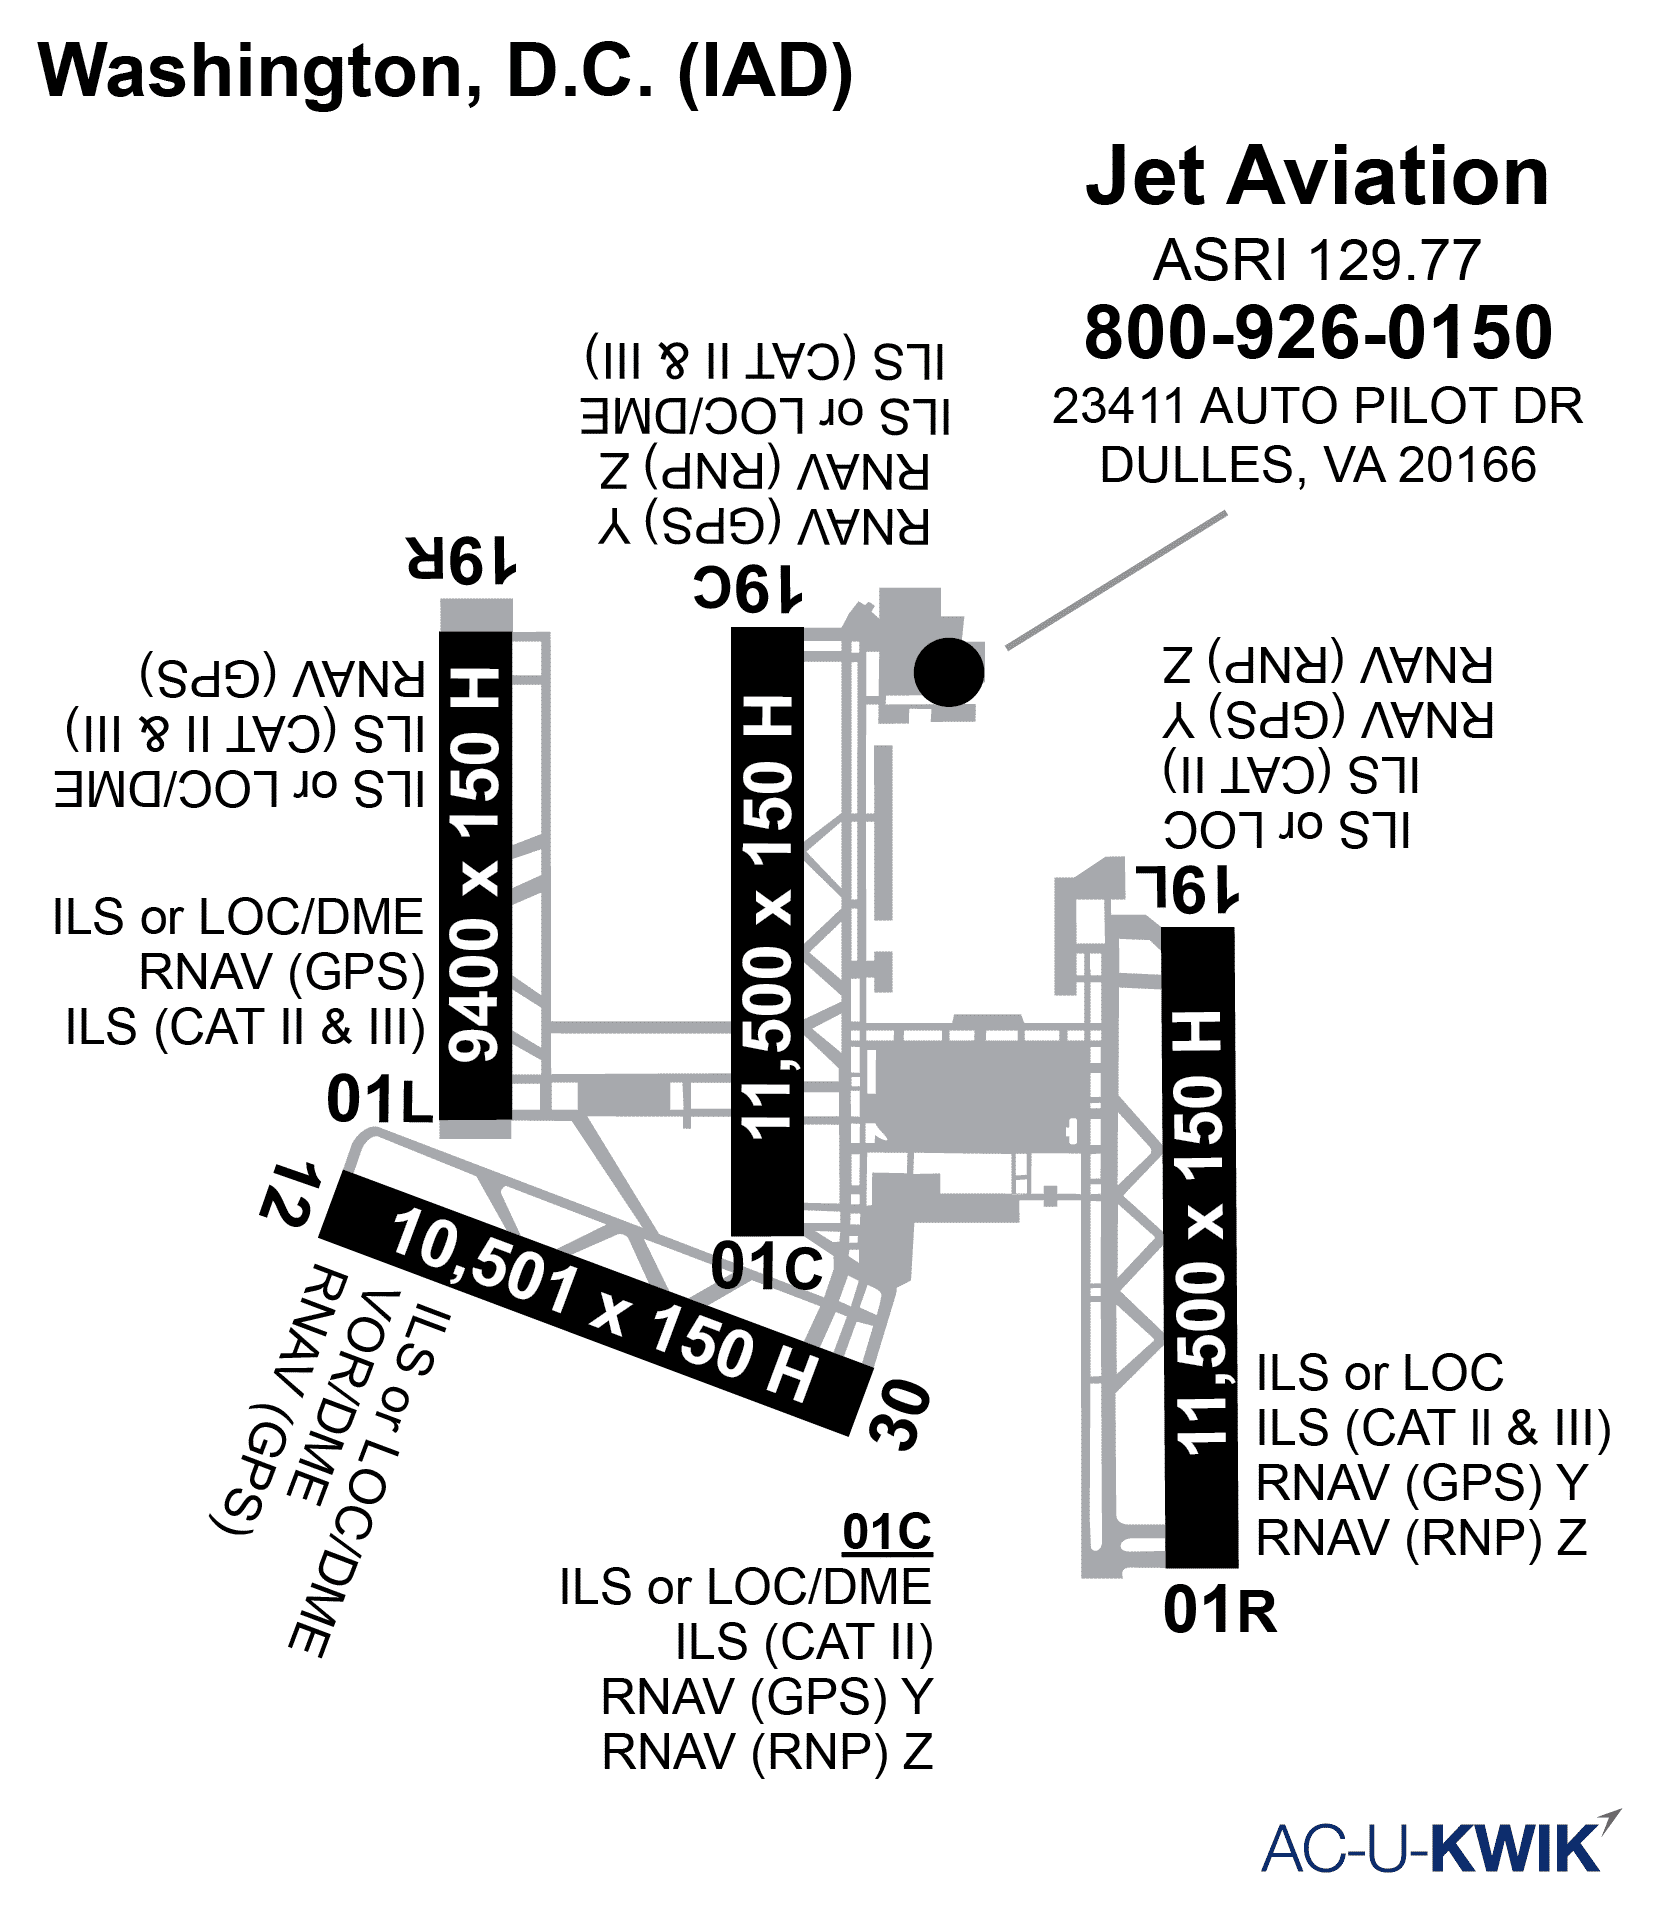 Jet Aviation – Washington/Dulles AC-U-KWIK Map